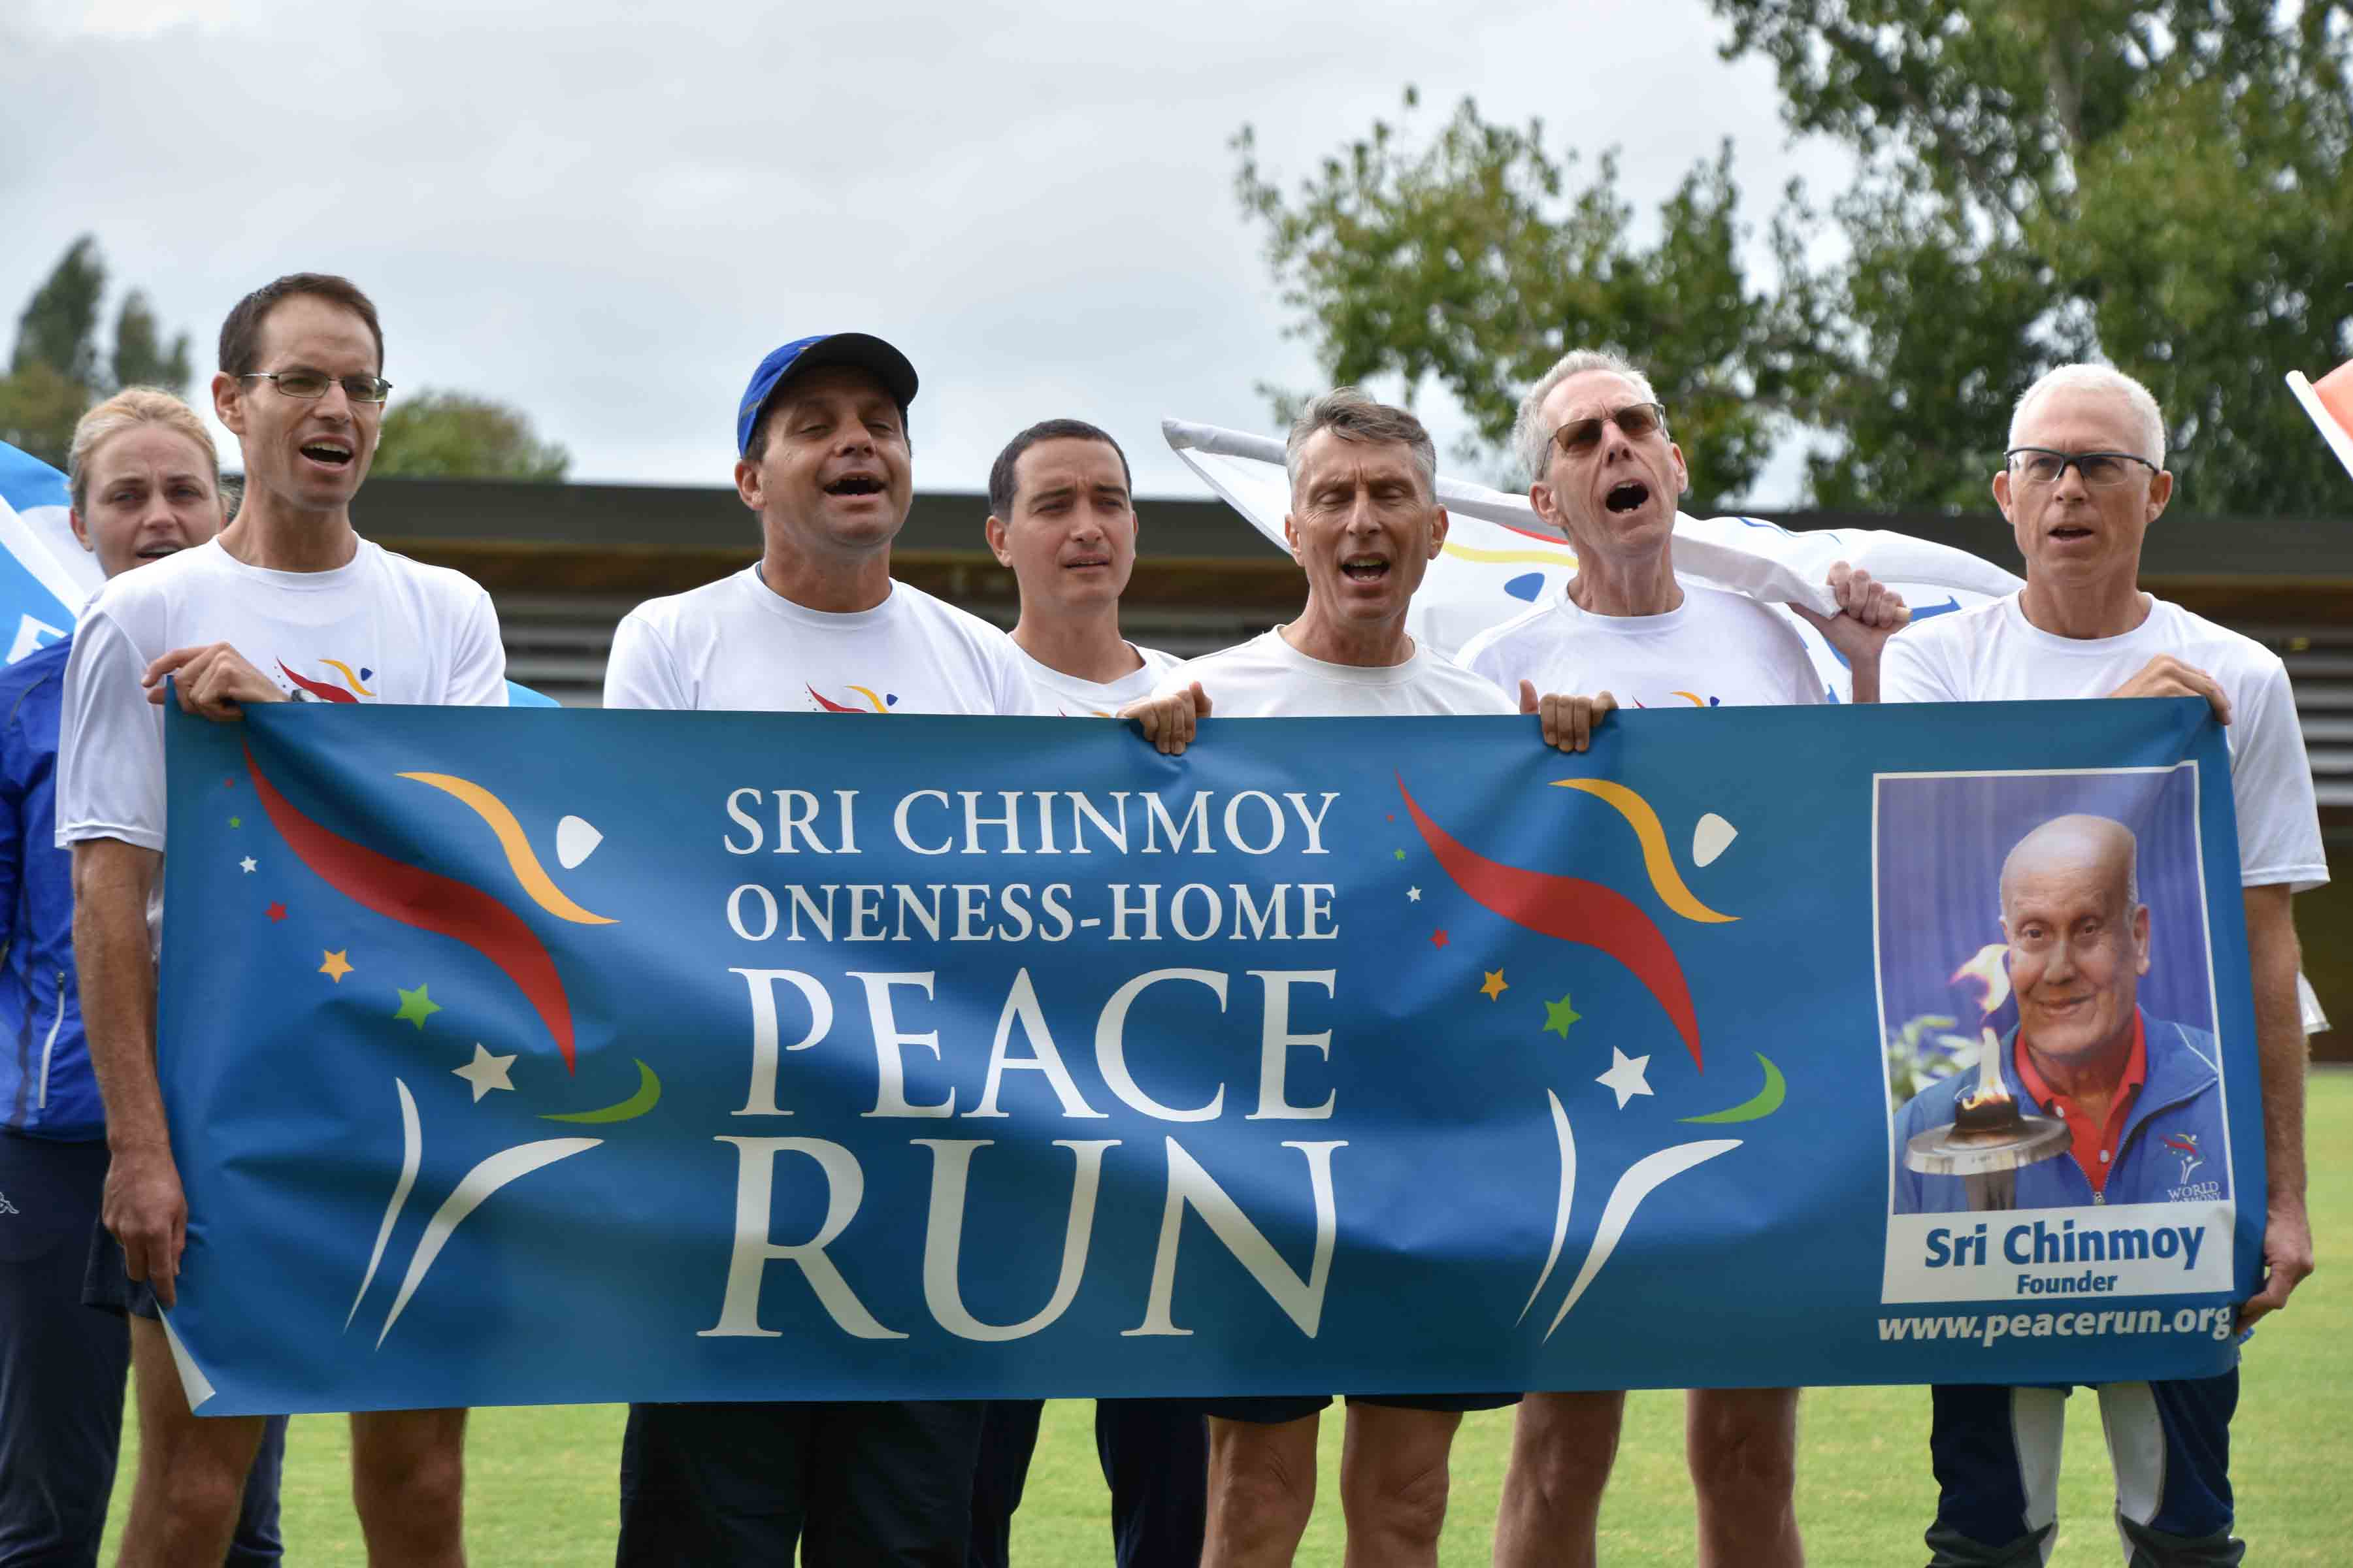 3 Saint-Kentigern-and-the-International-Peace-Run.jpg